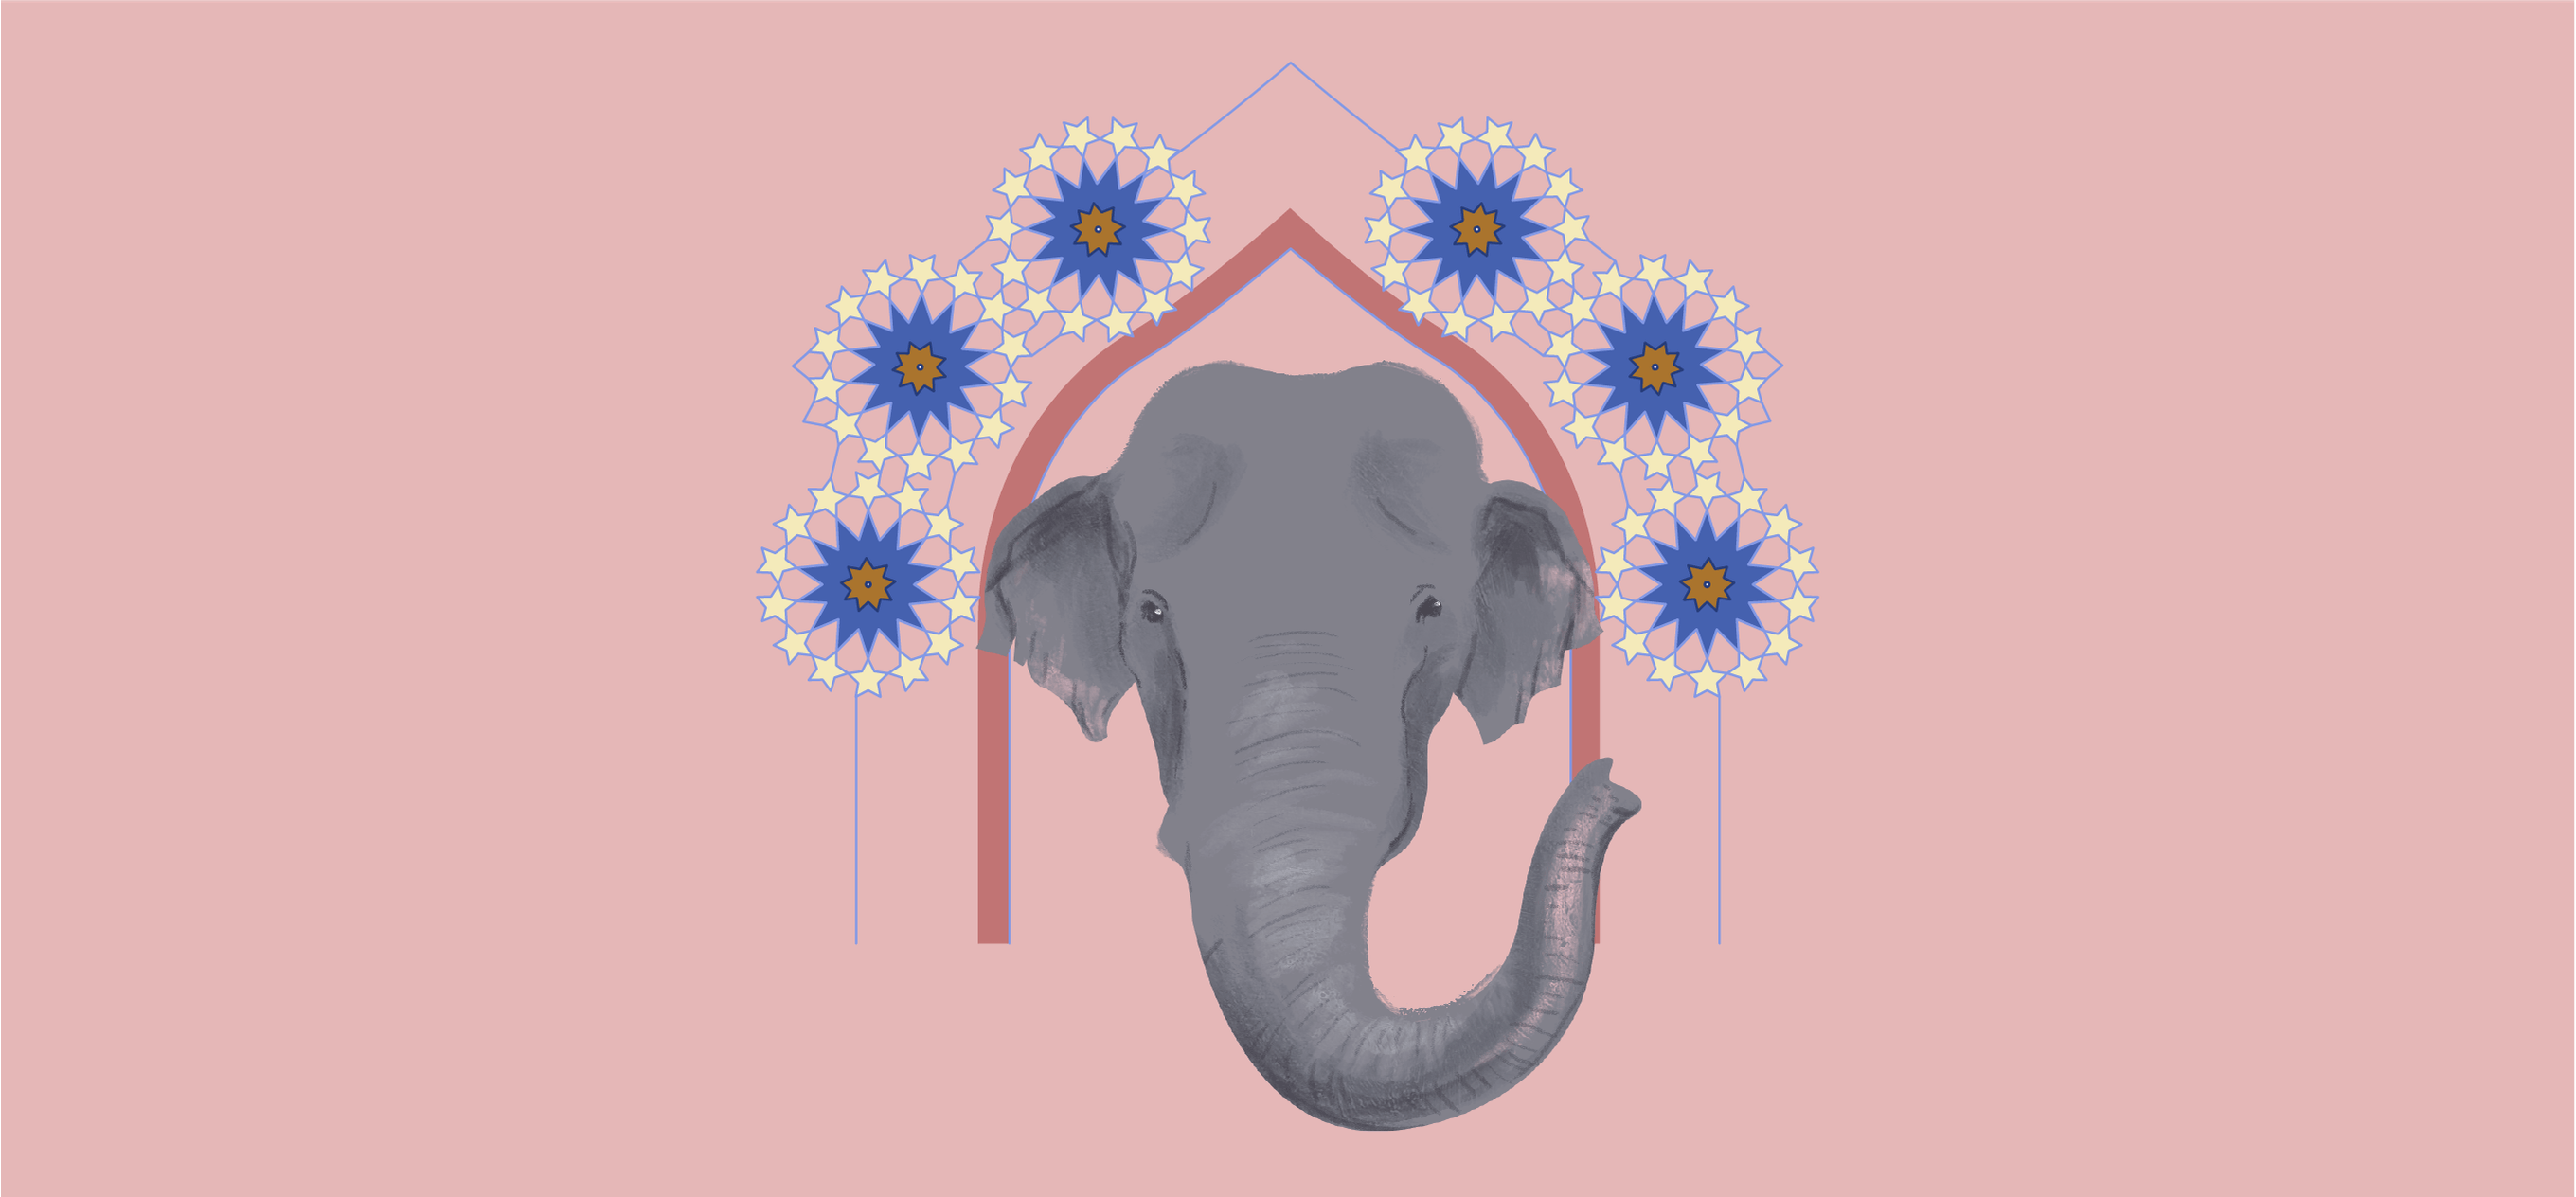 Hathi by Supriya Roychoudhury; Illustration by Akshaya Zachariah for FiftyTwo.in